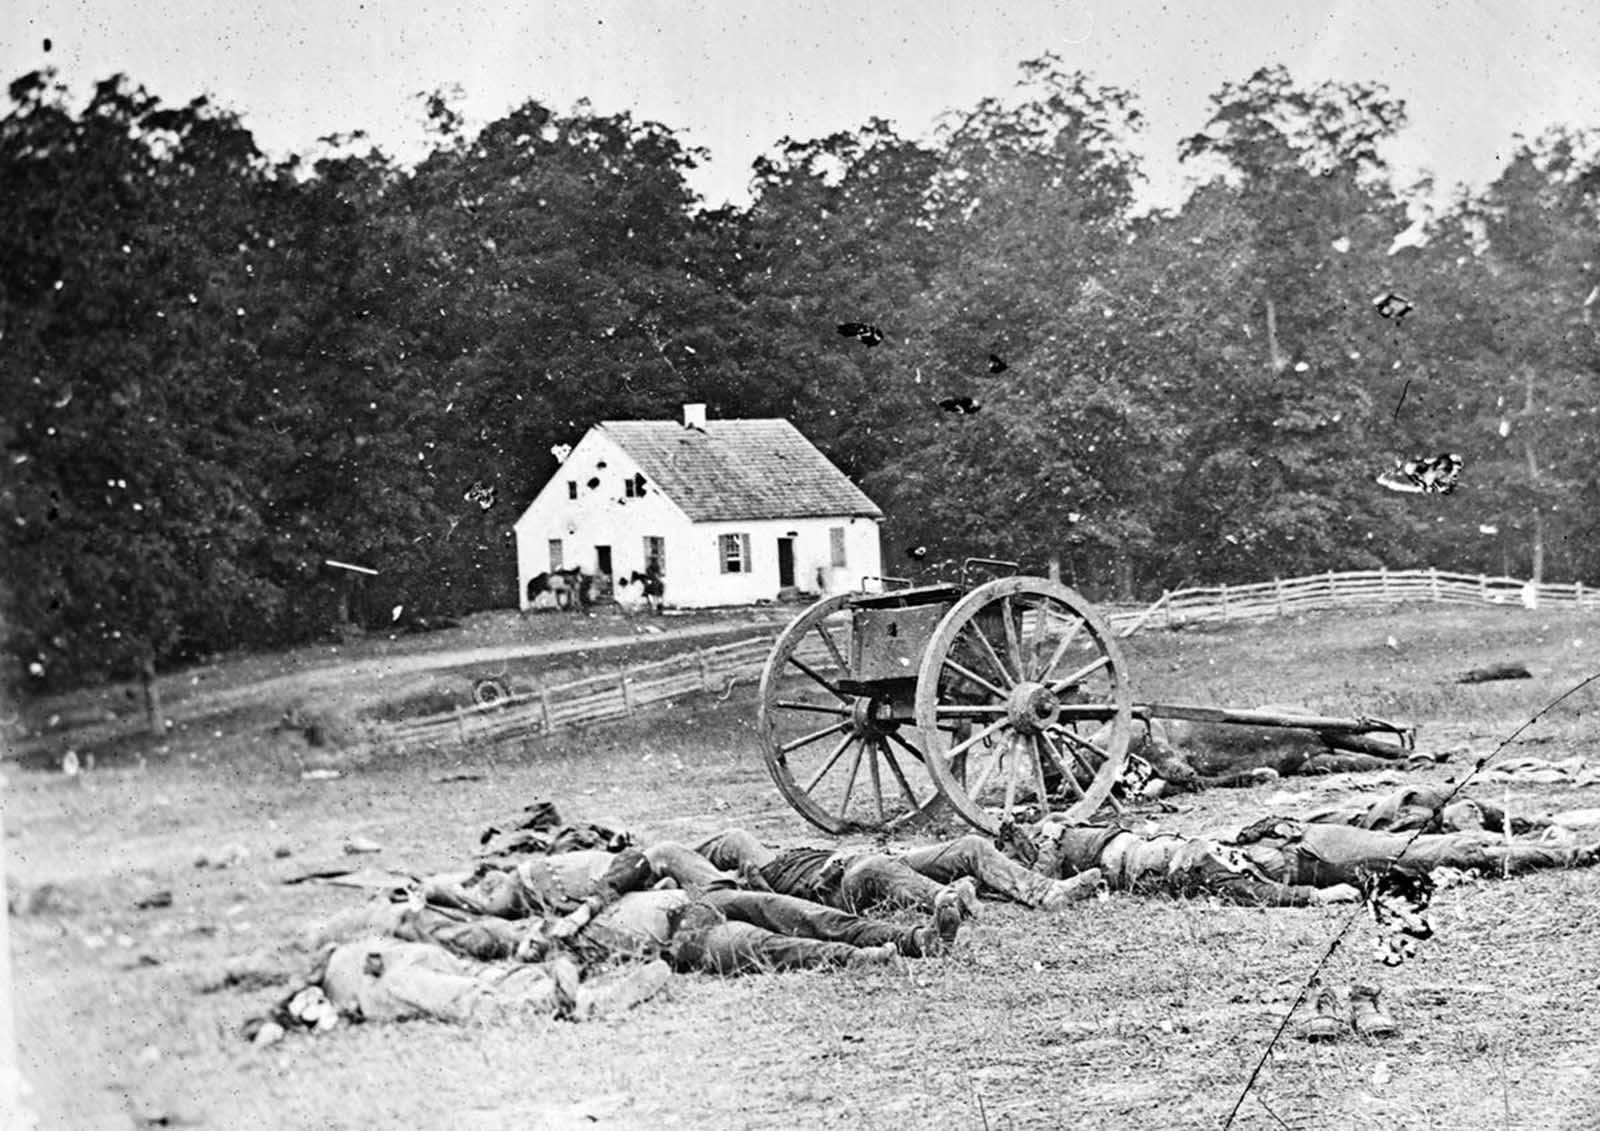 Bodies of soldiers lie on the ground in front of Dunker Church, after the Battle of Antietam, in Maryland, in September of 1862.